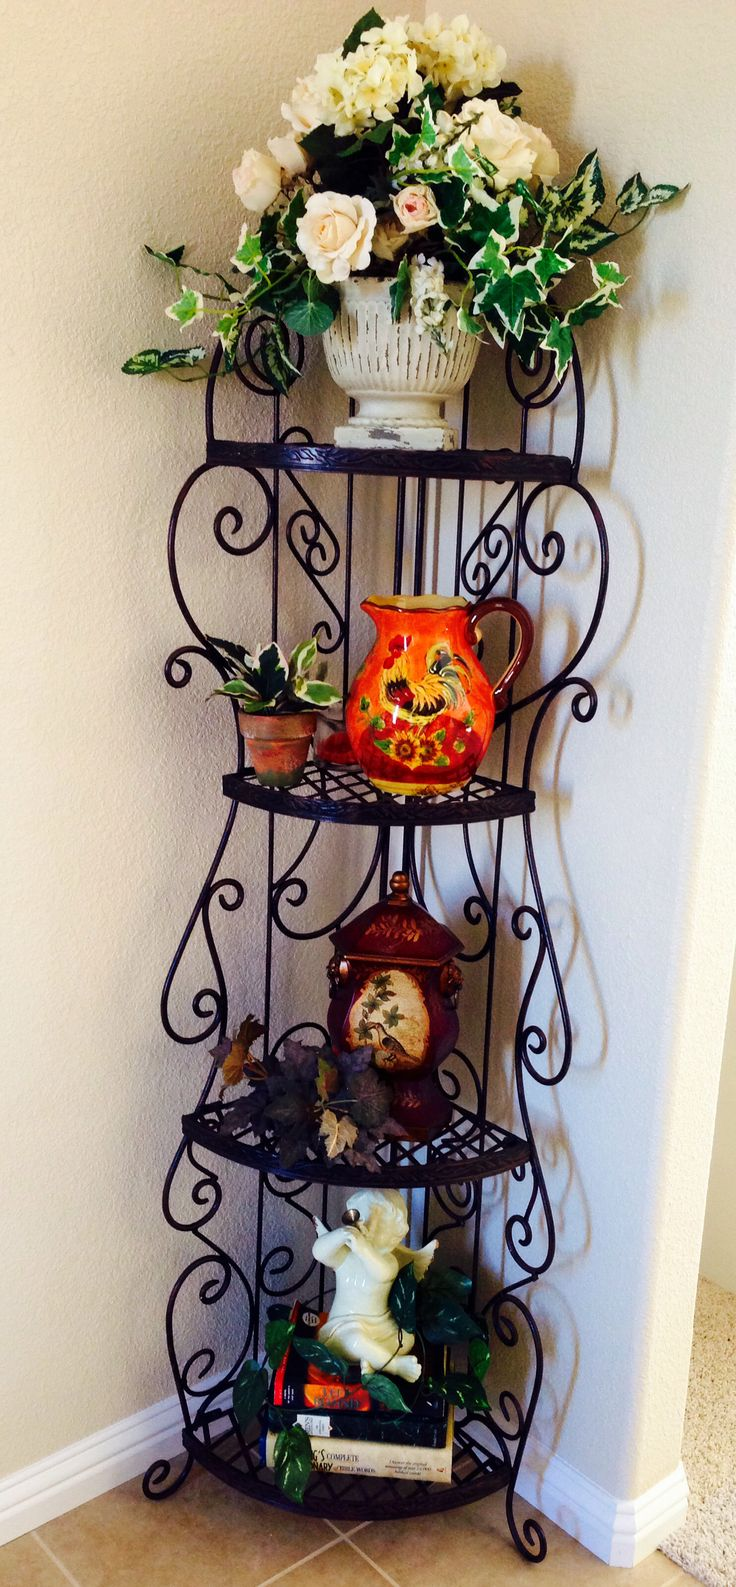 My Tuscan Decor Found And Collected From Craigslist The Wrought Iron Corner Shelf I Bought Cl For 25 Fro Home On A Budget